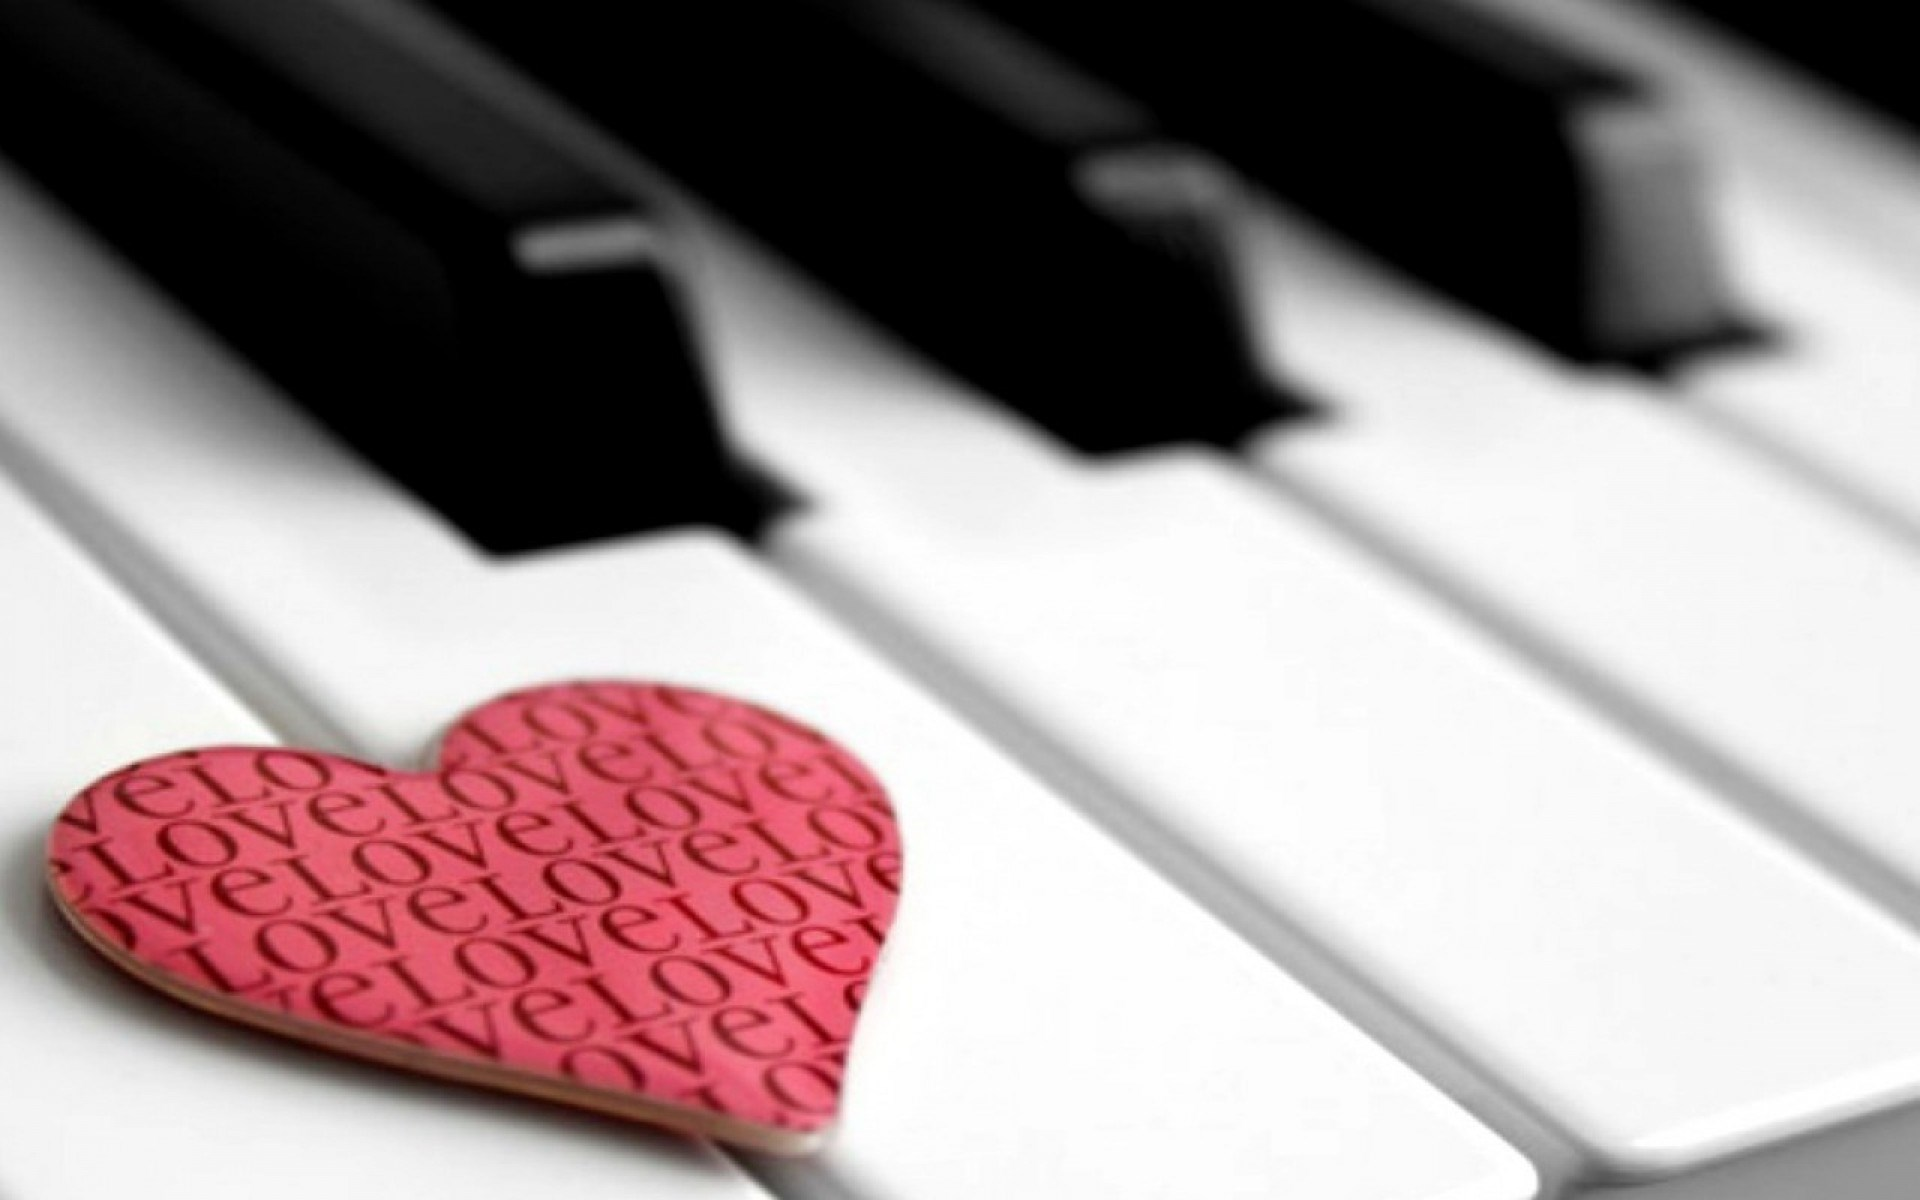 Free HD Piano Backgrounds